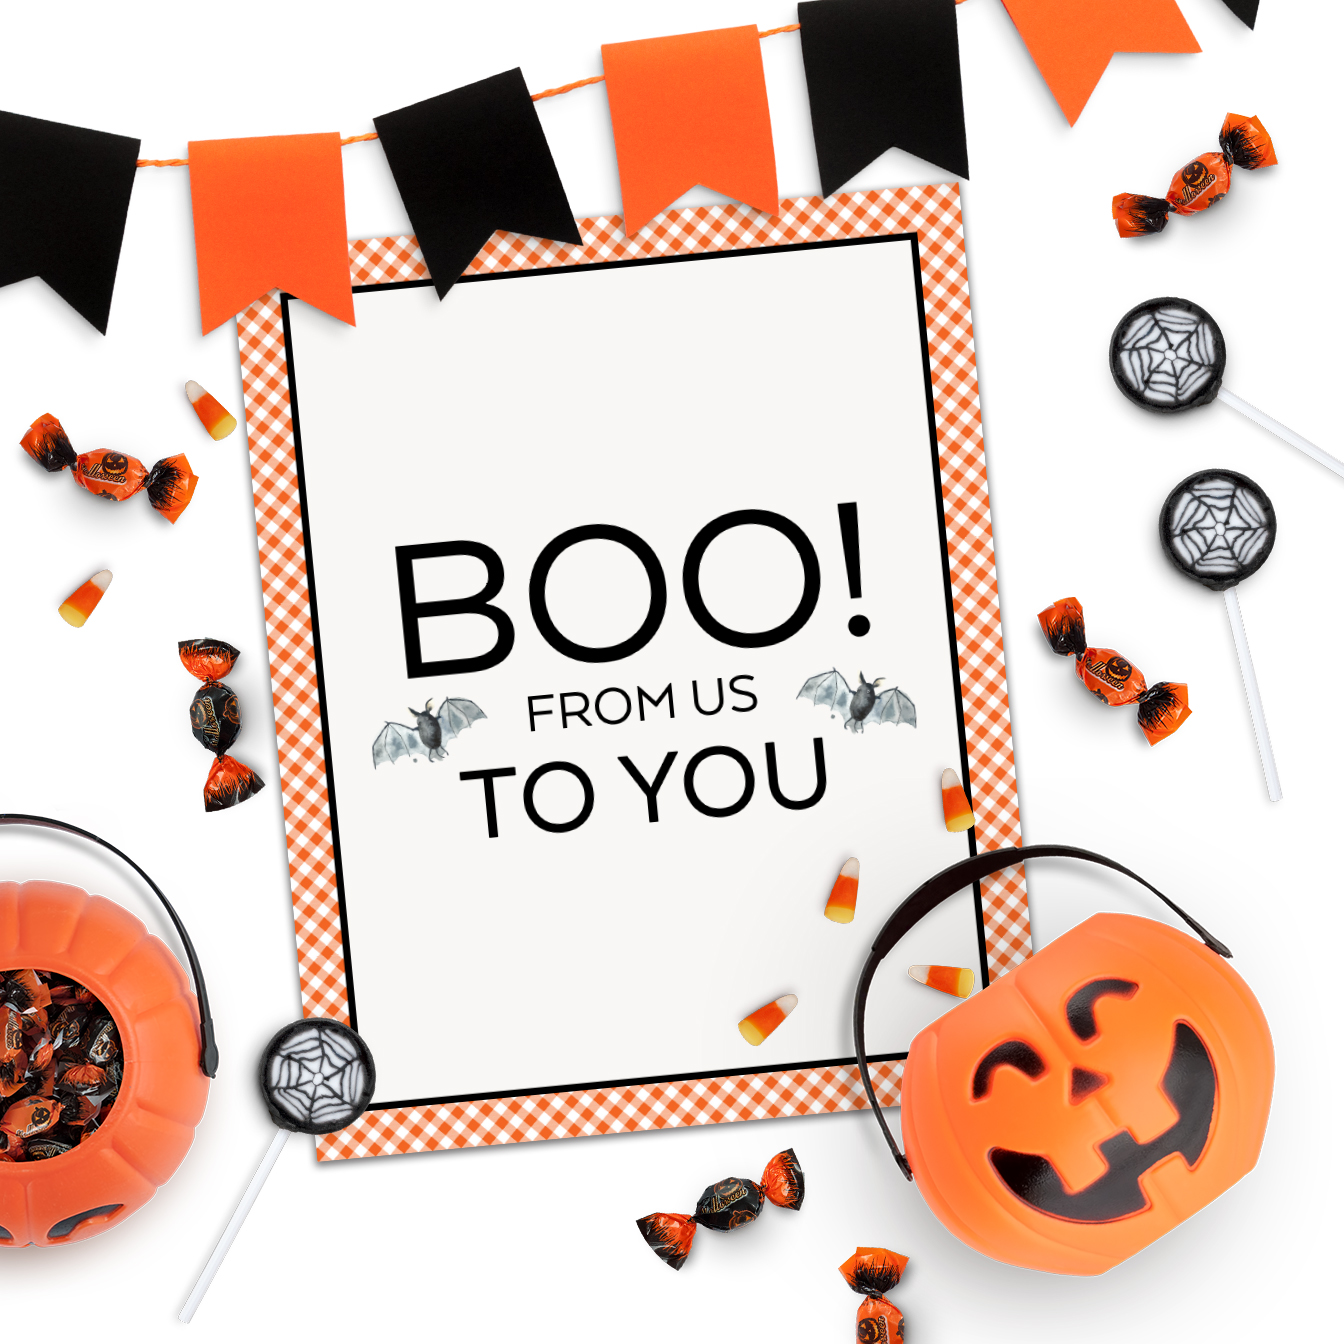 graphic relating to Boo Printable named No cost Halloween Printables - Youve Been Booed - Pineapple